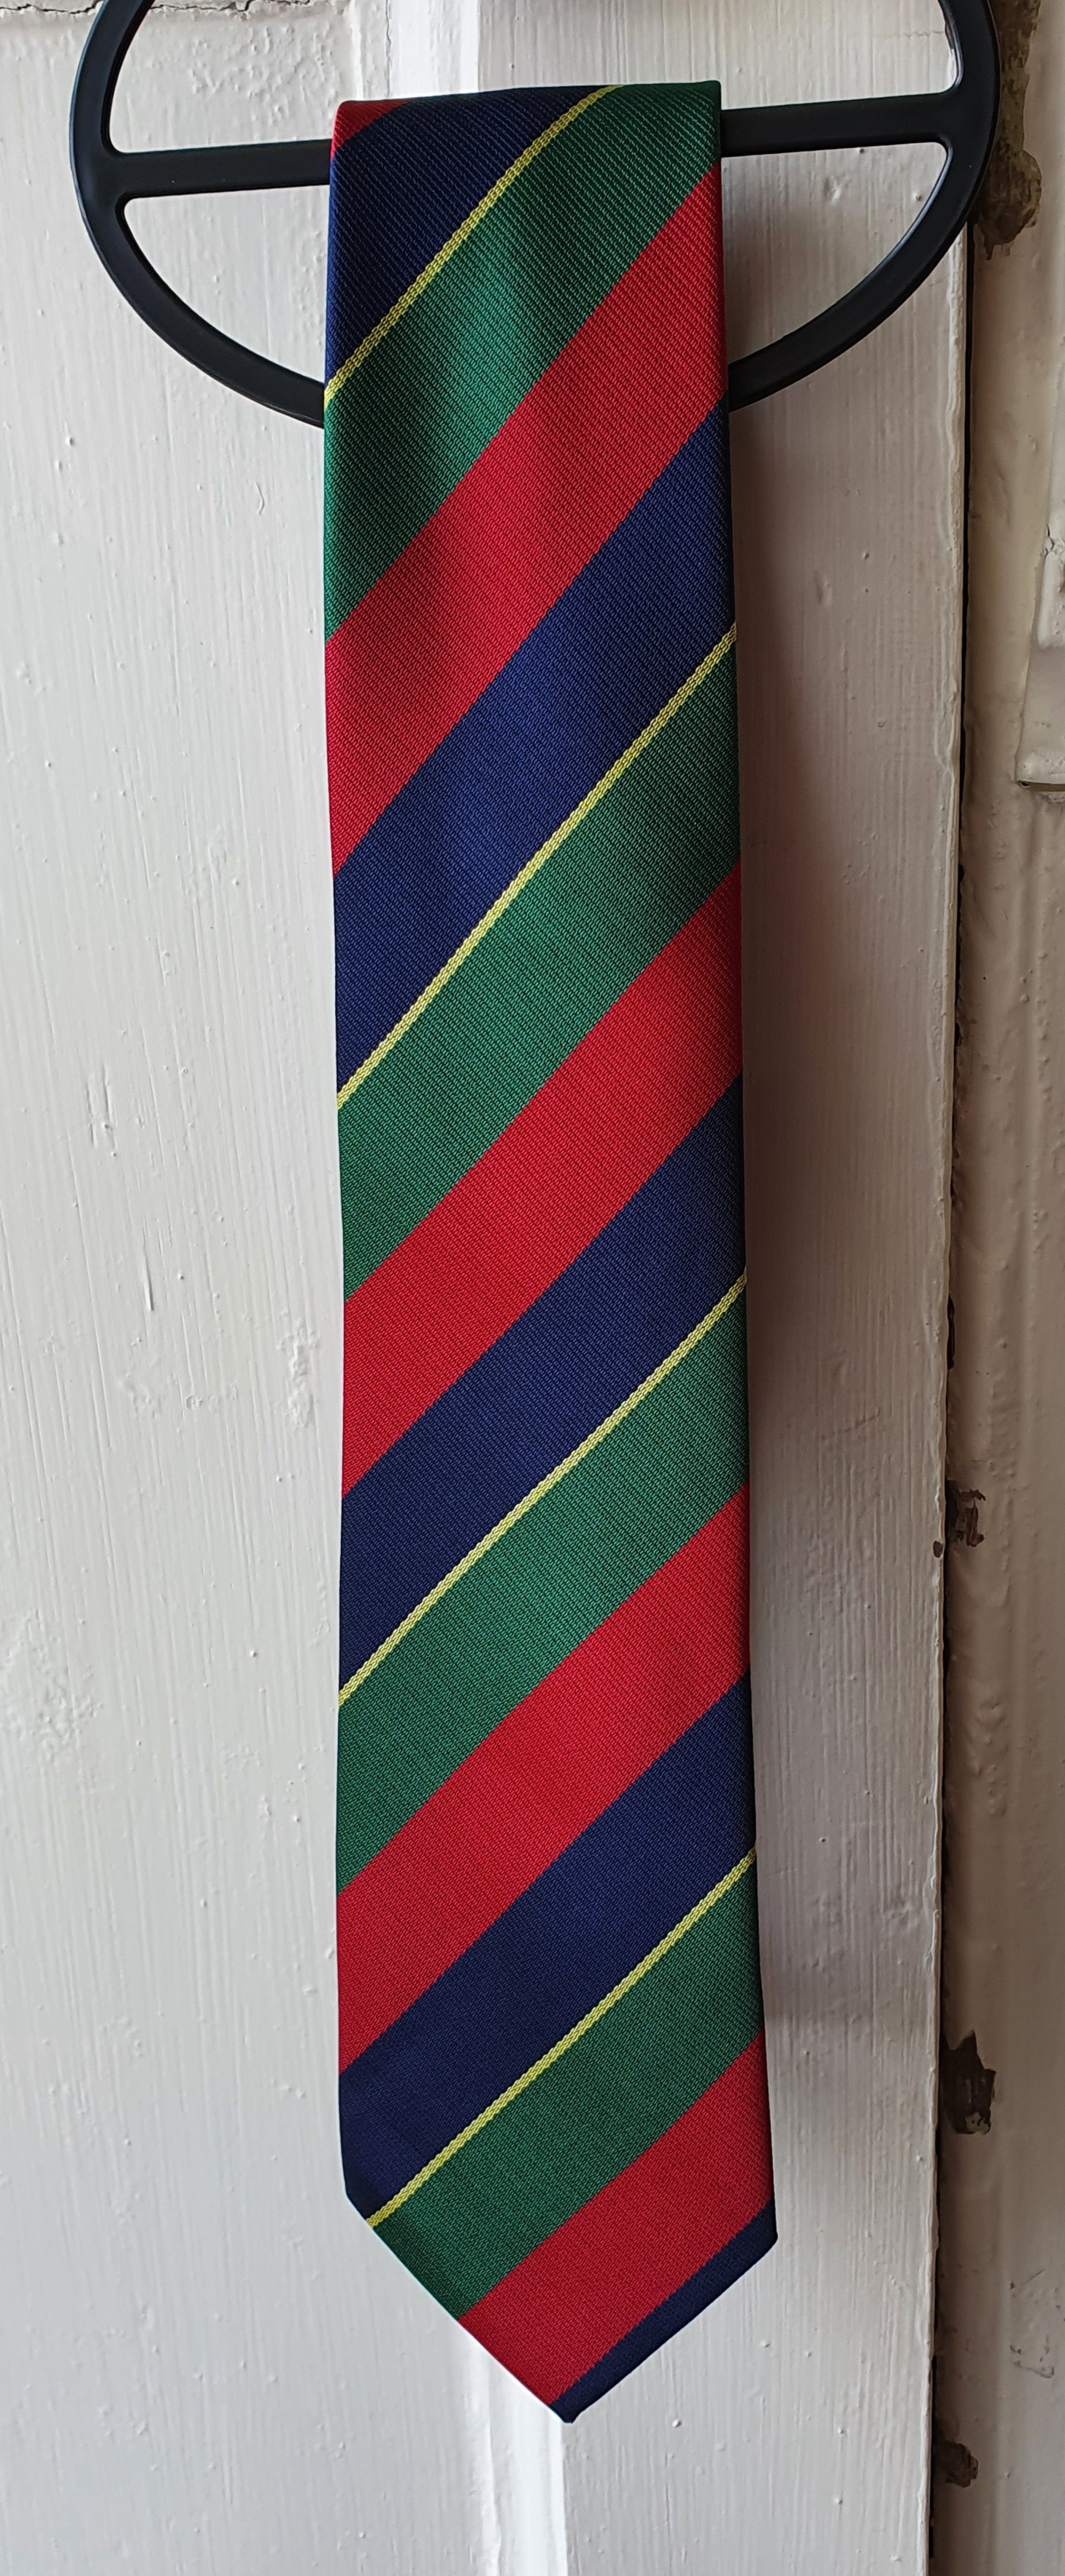 The Queens Own Cameron Highlanders Regimental Tie